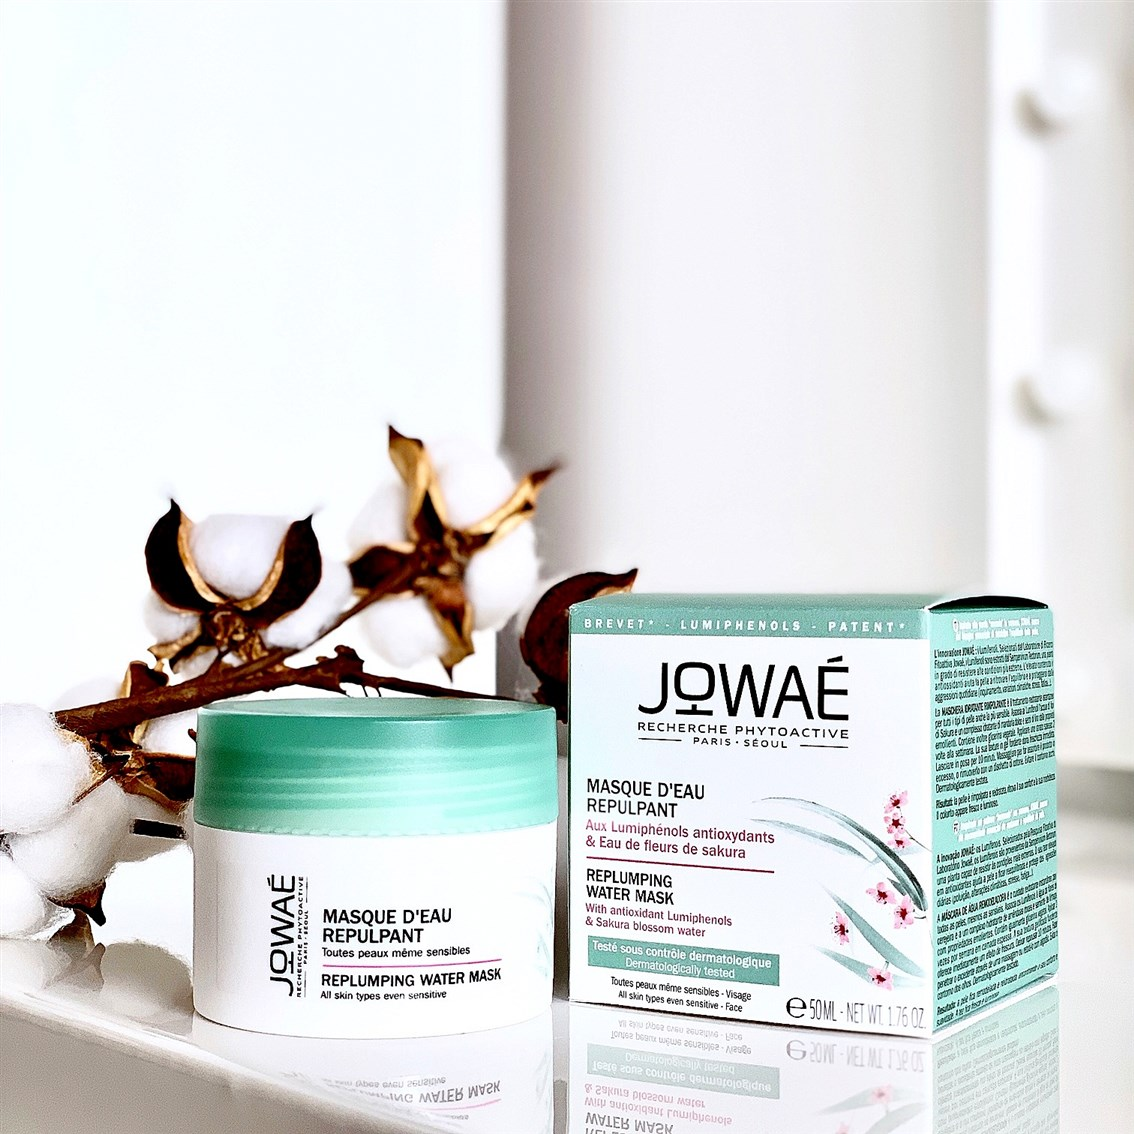 Jowae Replumping Water Mask blog